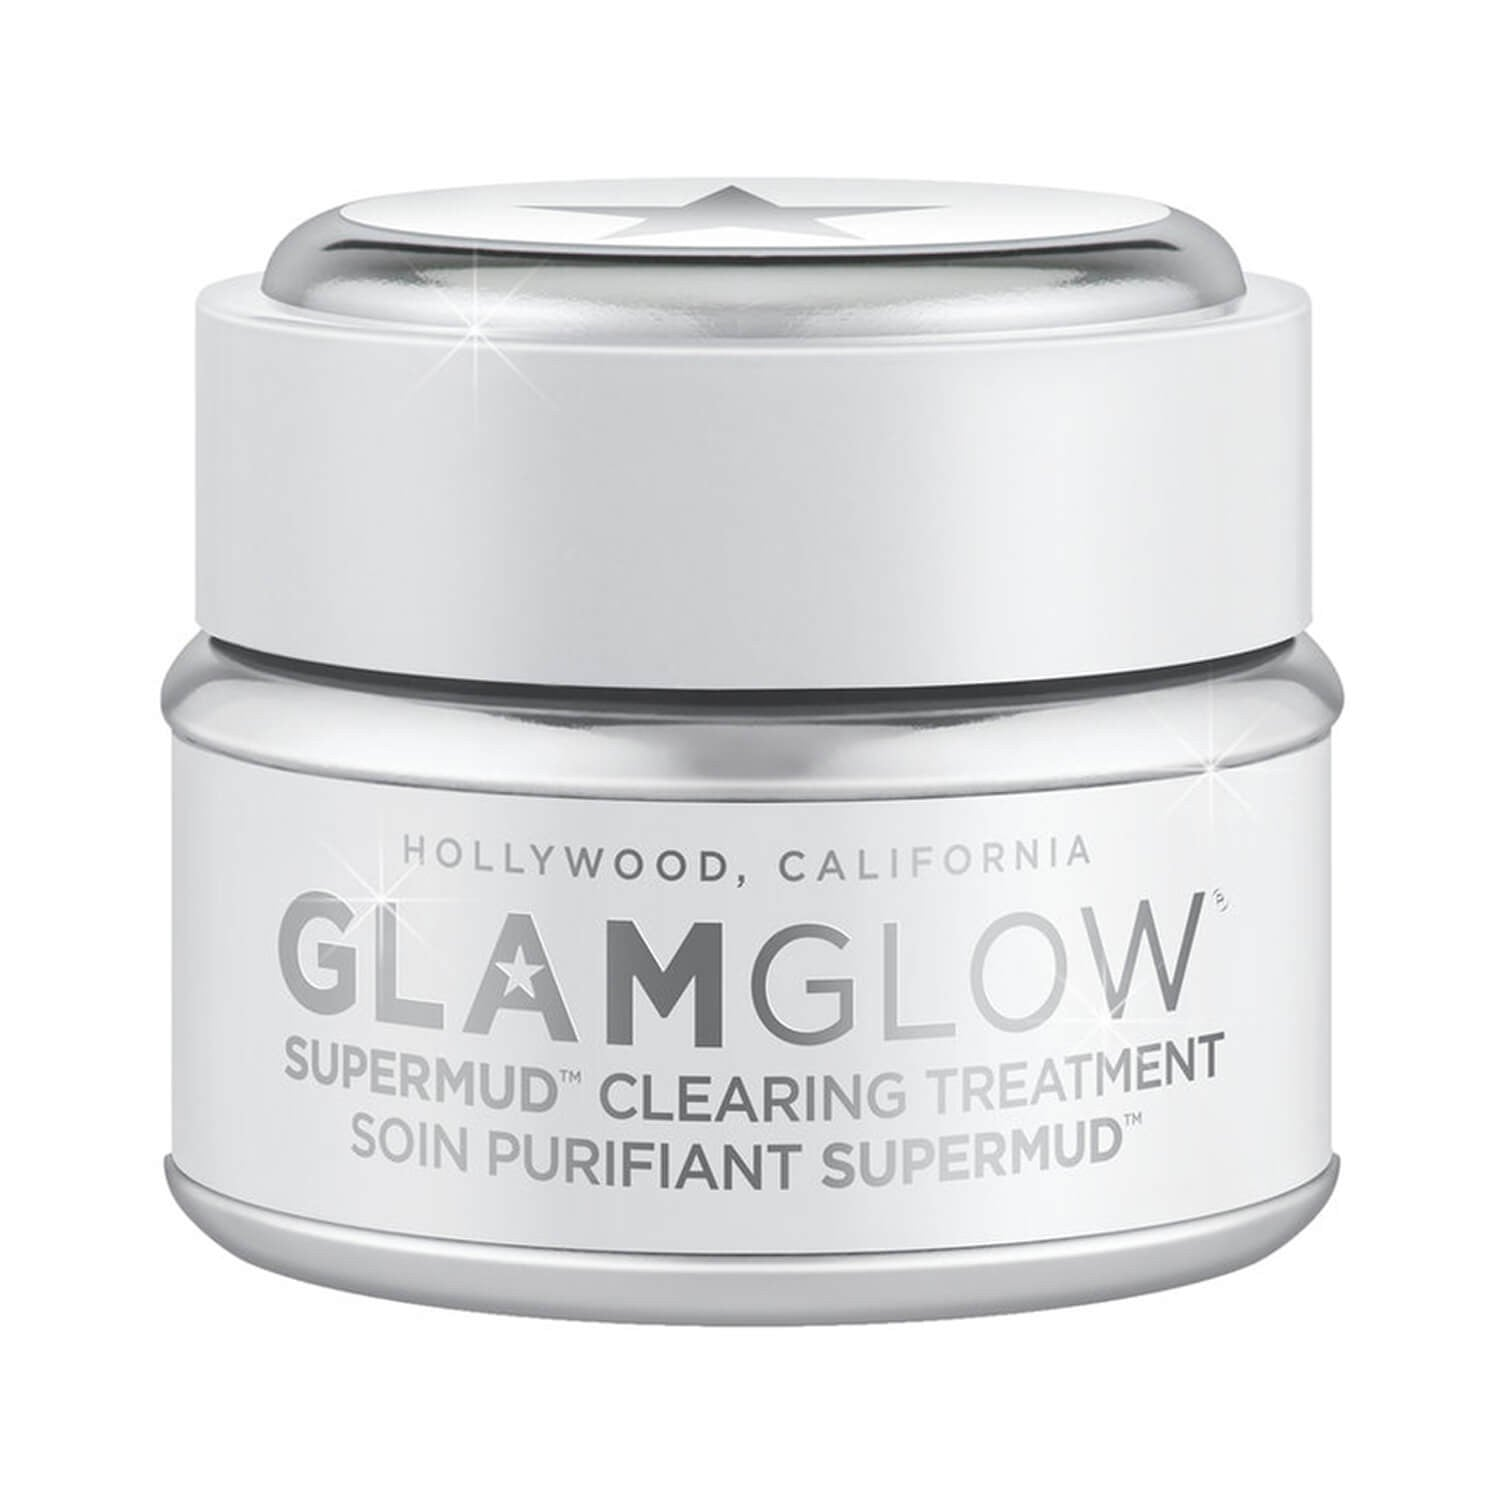 Image result for glam glow super mud